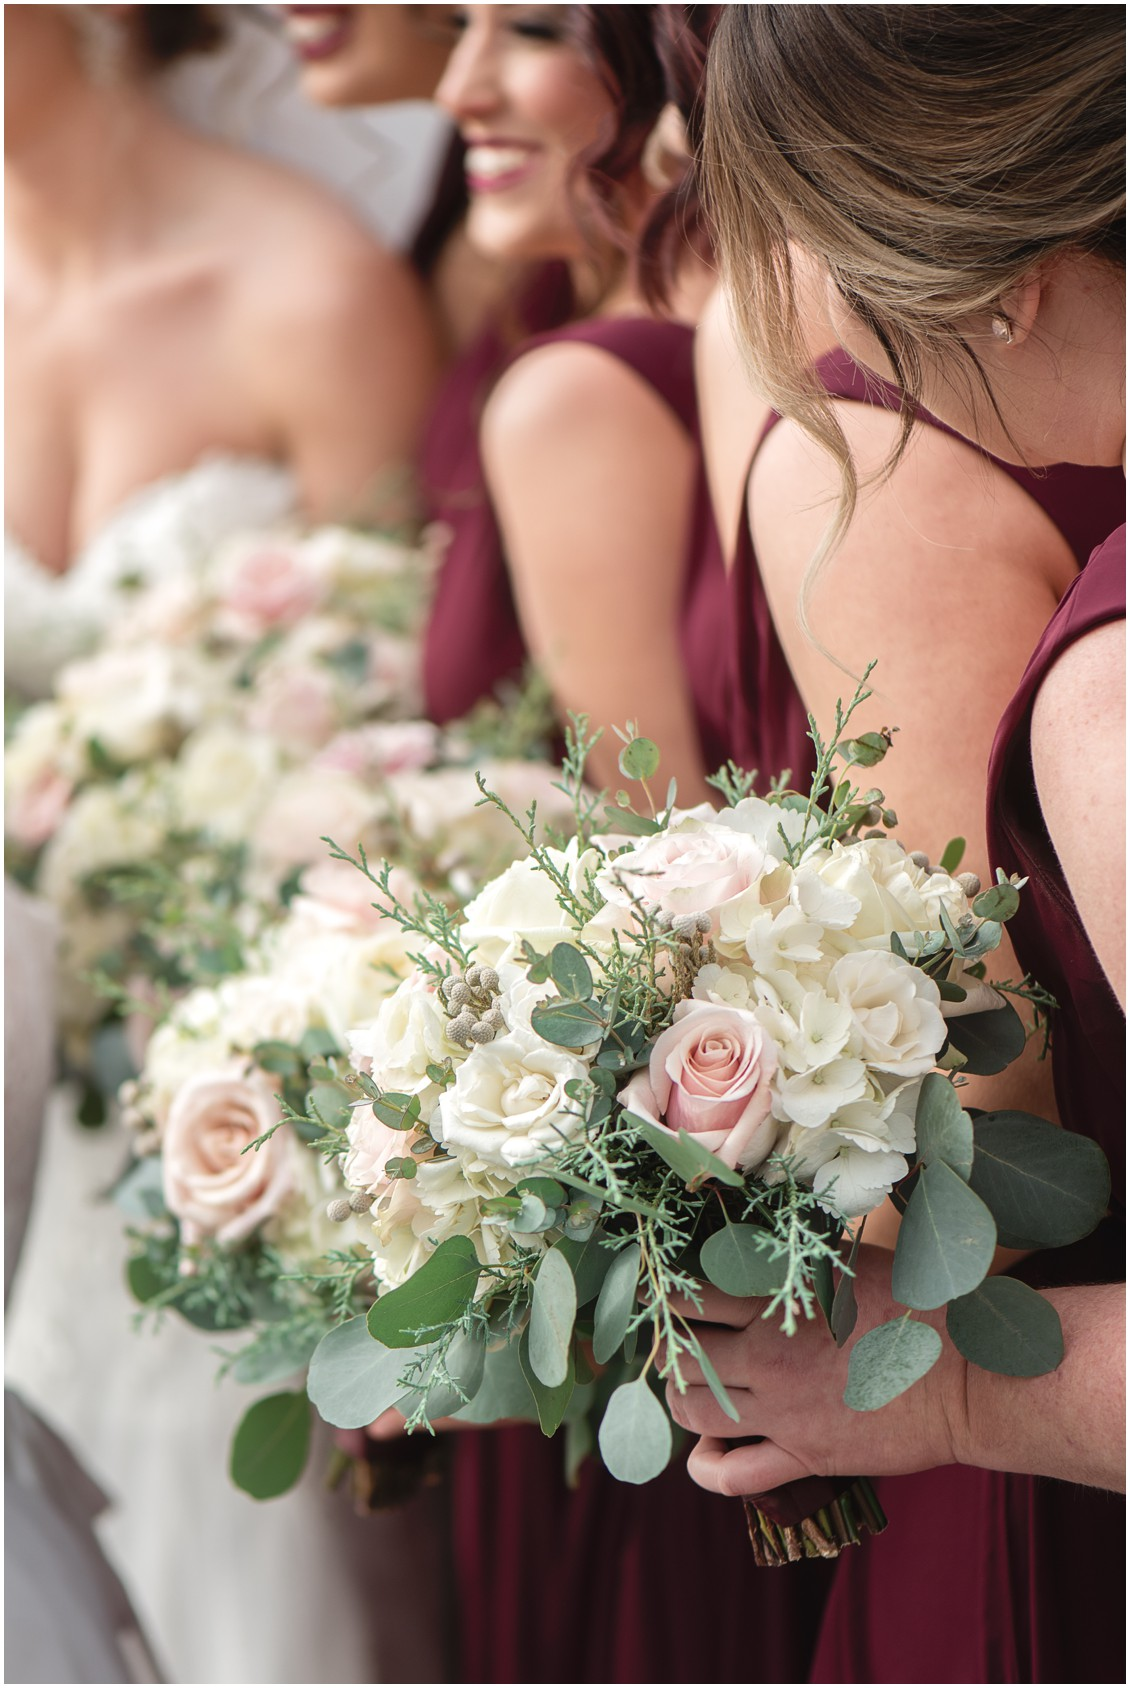 Floral bouquets blush roses and white for winter wedding | My Eastern Shore Wedding | Karena Dixon | Monteray Farms